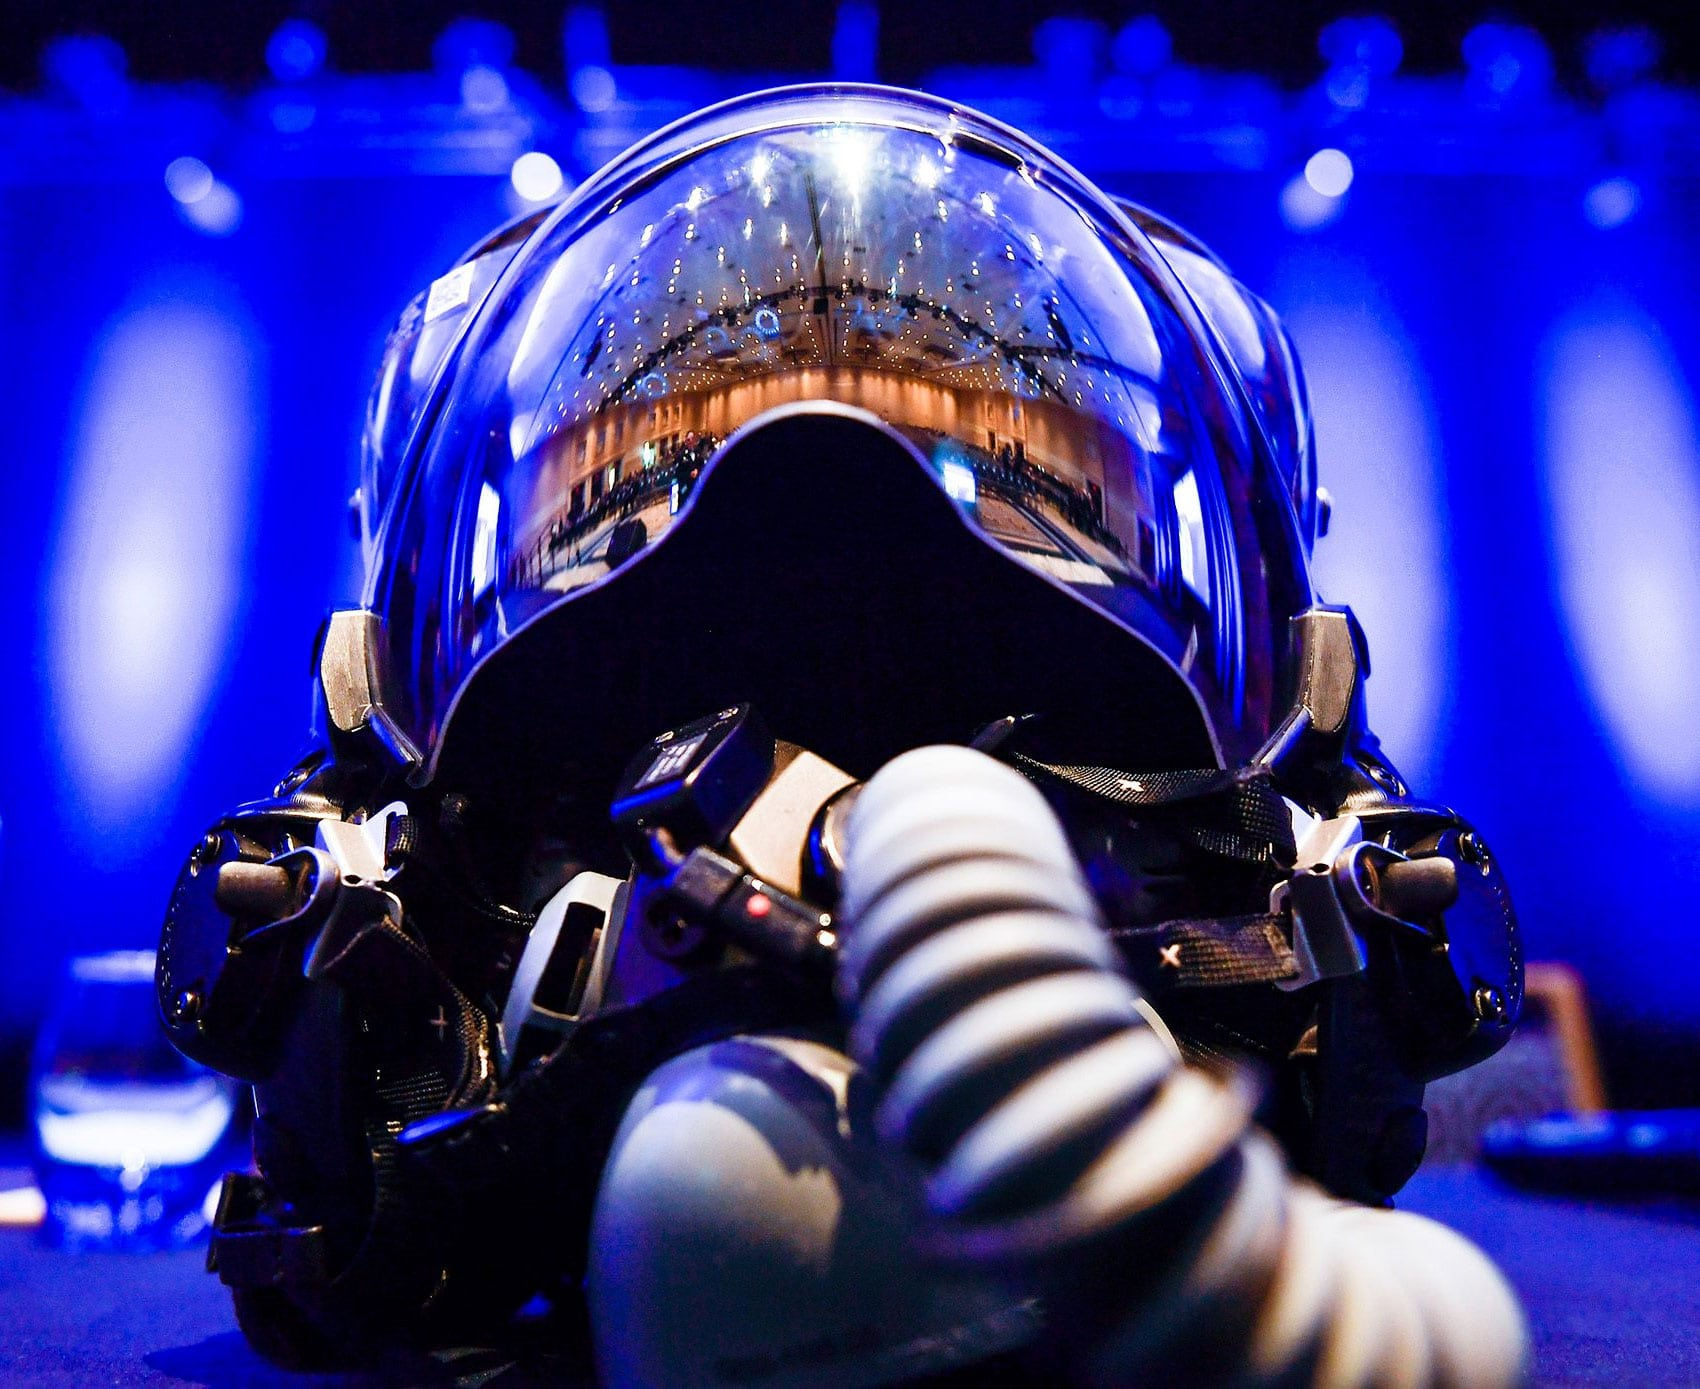 An F-35 Lightning II helmet sits on stage during the F-35 reaching initial operational capability panel discussion during the Air Force Association's Air, Space and Cyber Conference in National Harbor, MD.